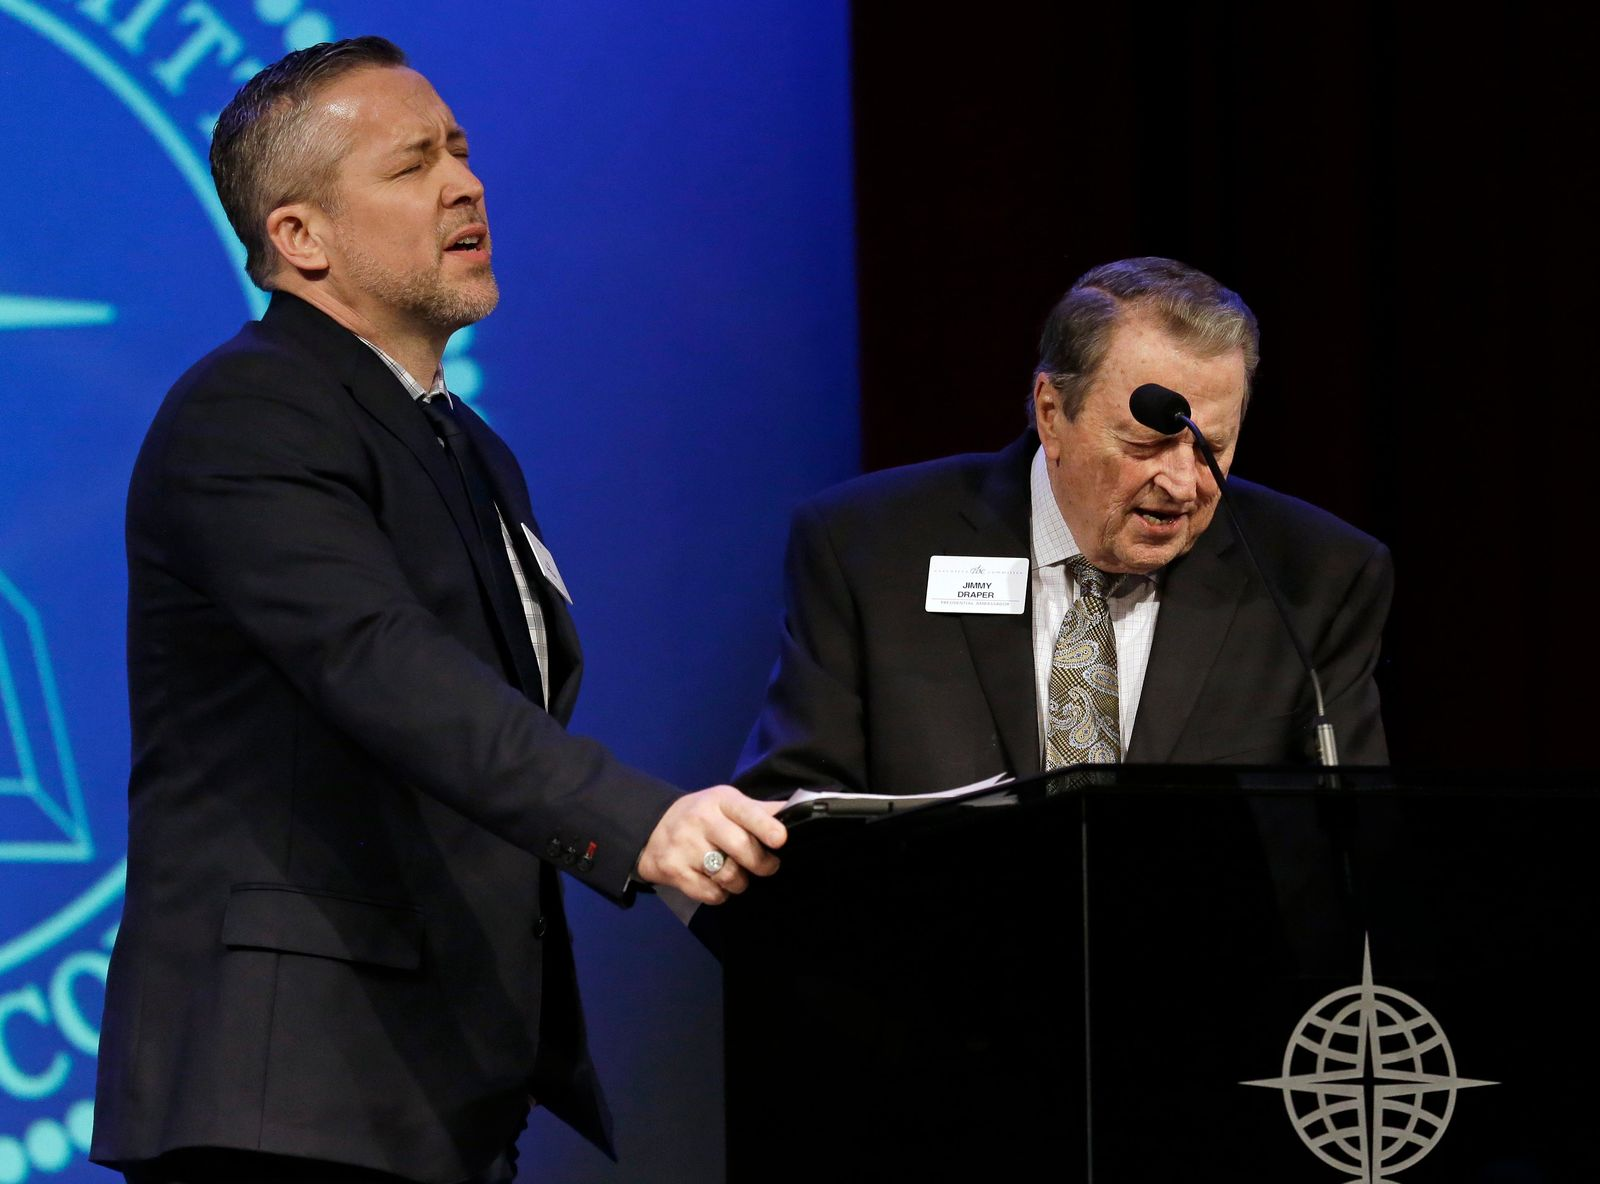 Southern Baptist Convention President J.D. Greear, left, prays with Jimmy Draper, right, a former denomination president, before Greear spoke to the denomination's executive committee Monday, Feb. 18, 2019, in Nashville, Tenn. (AP Photo/Mark Humphrey)